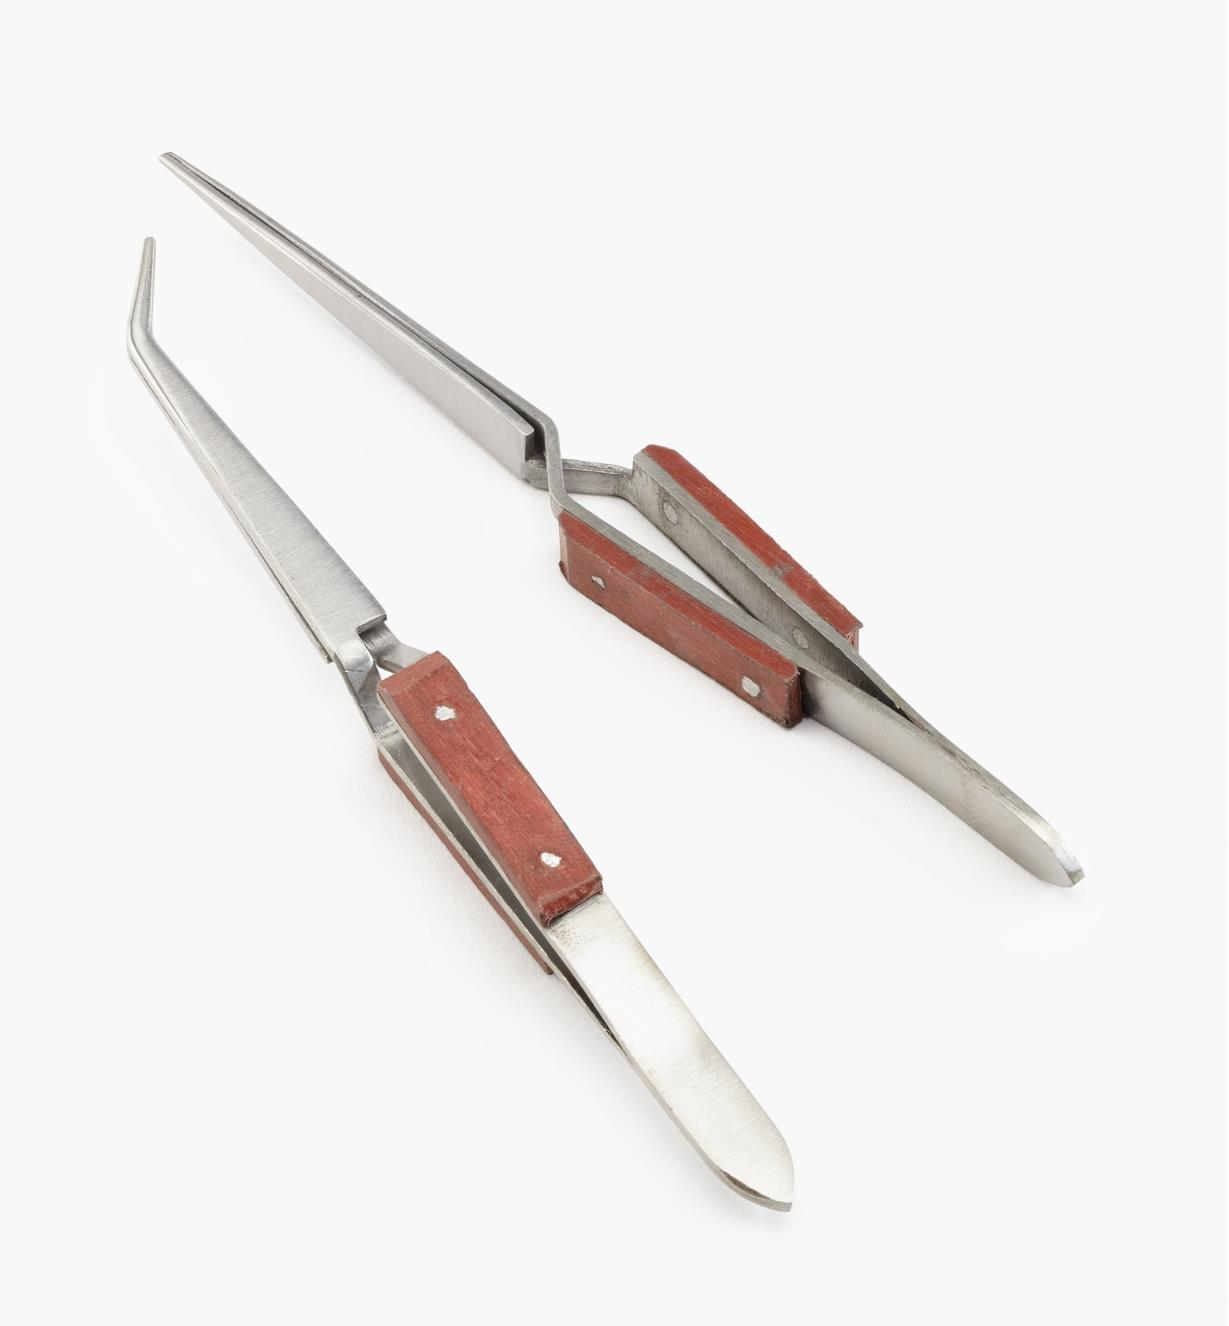 86K9410 - Cross-Clamp Tweezers, set of 2